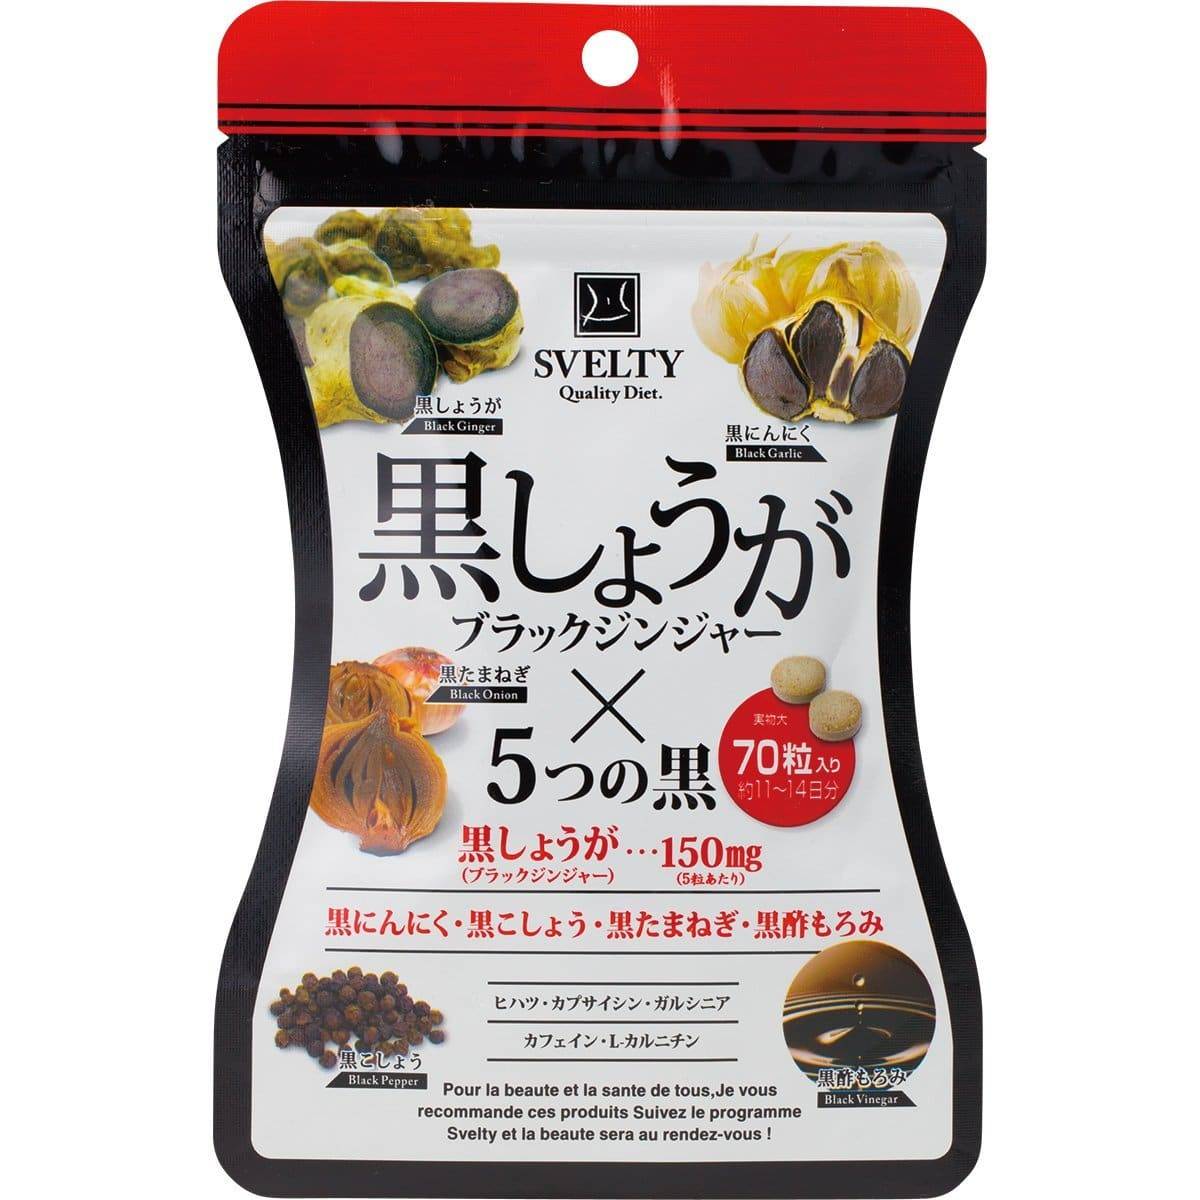 Thuoc giam can svelty quality diet